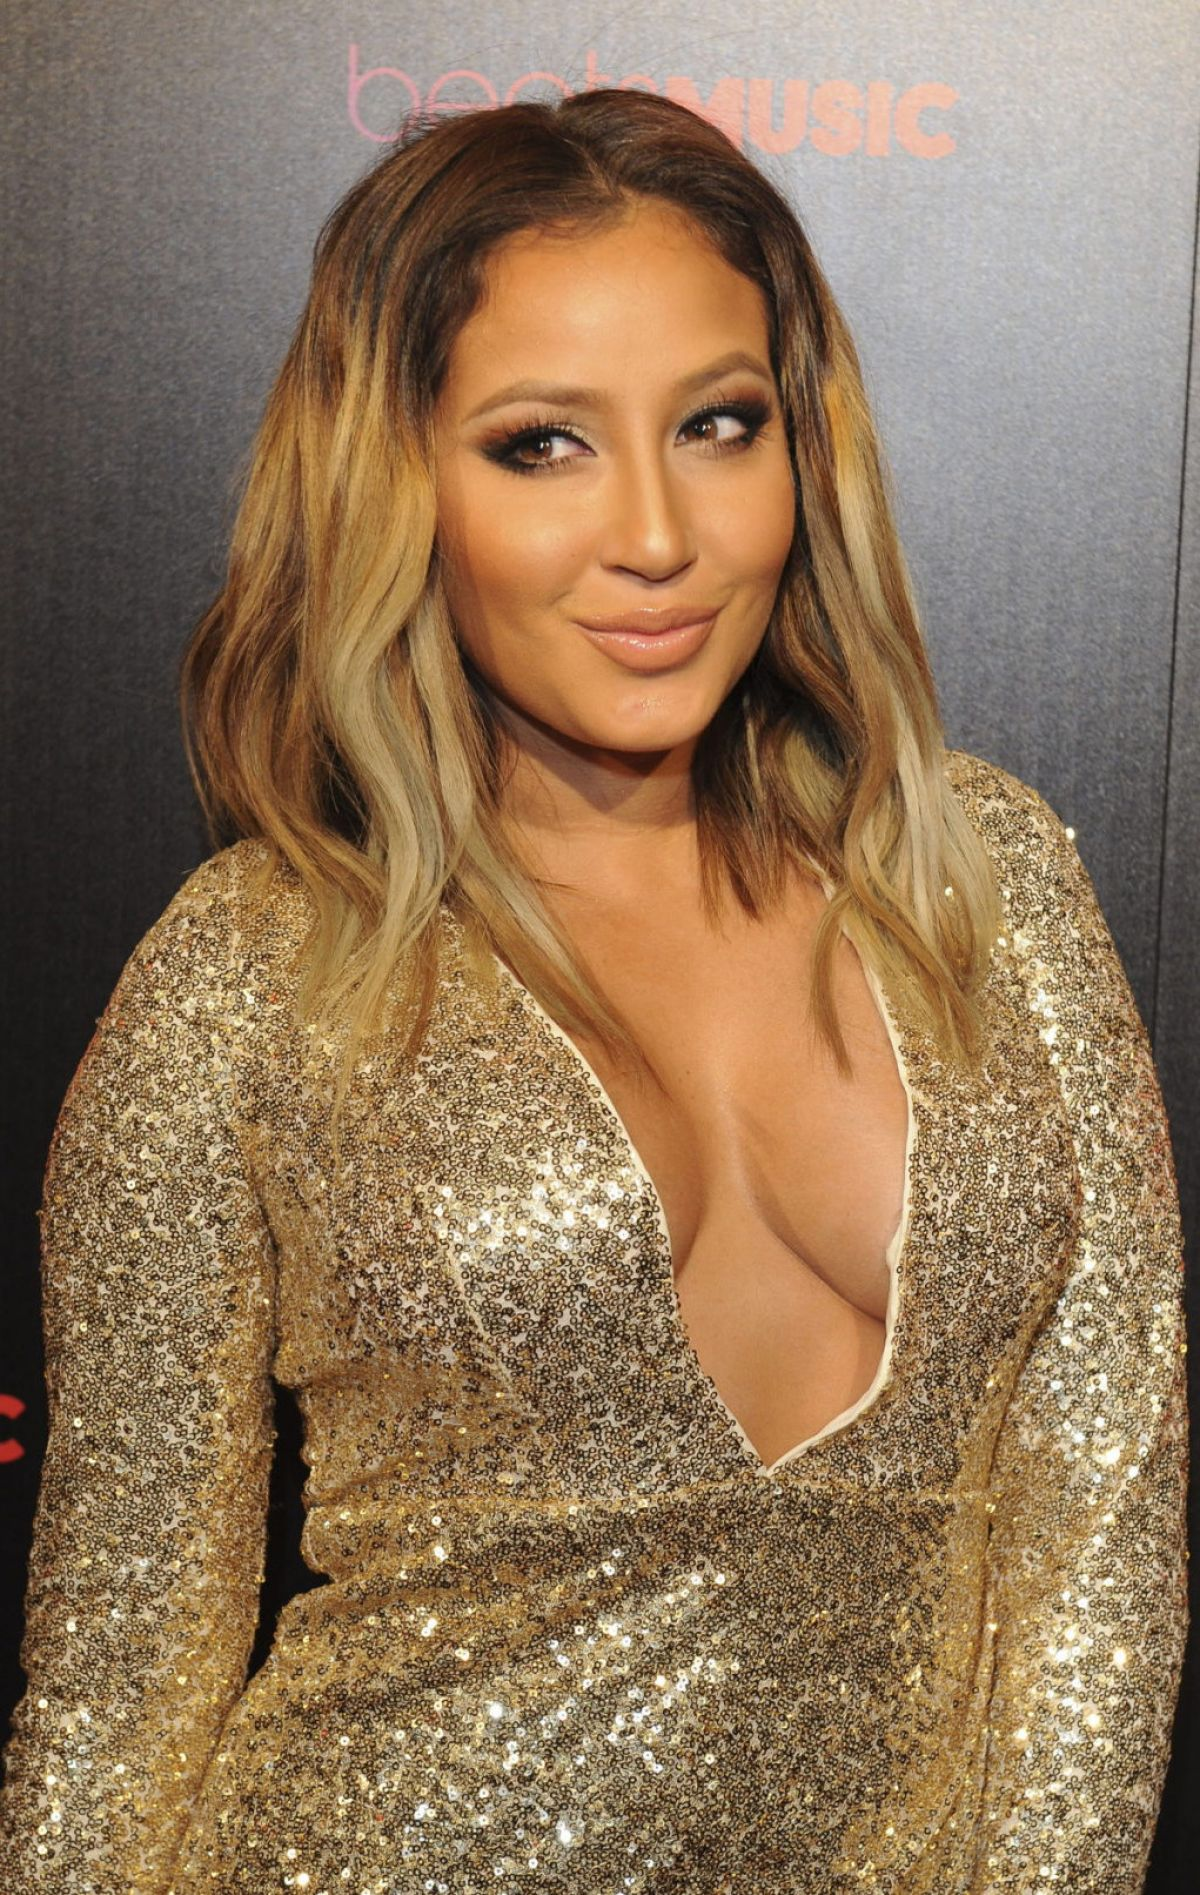 Adrienne Bailon For mobile